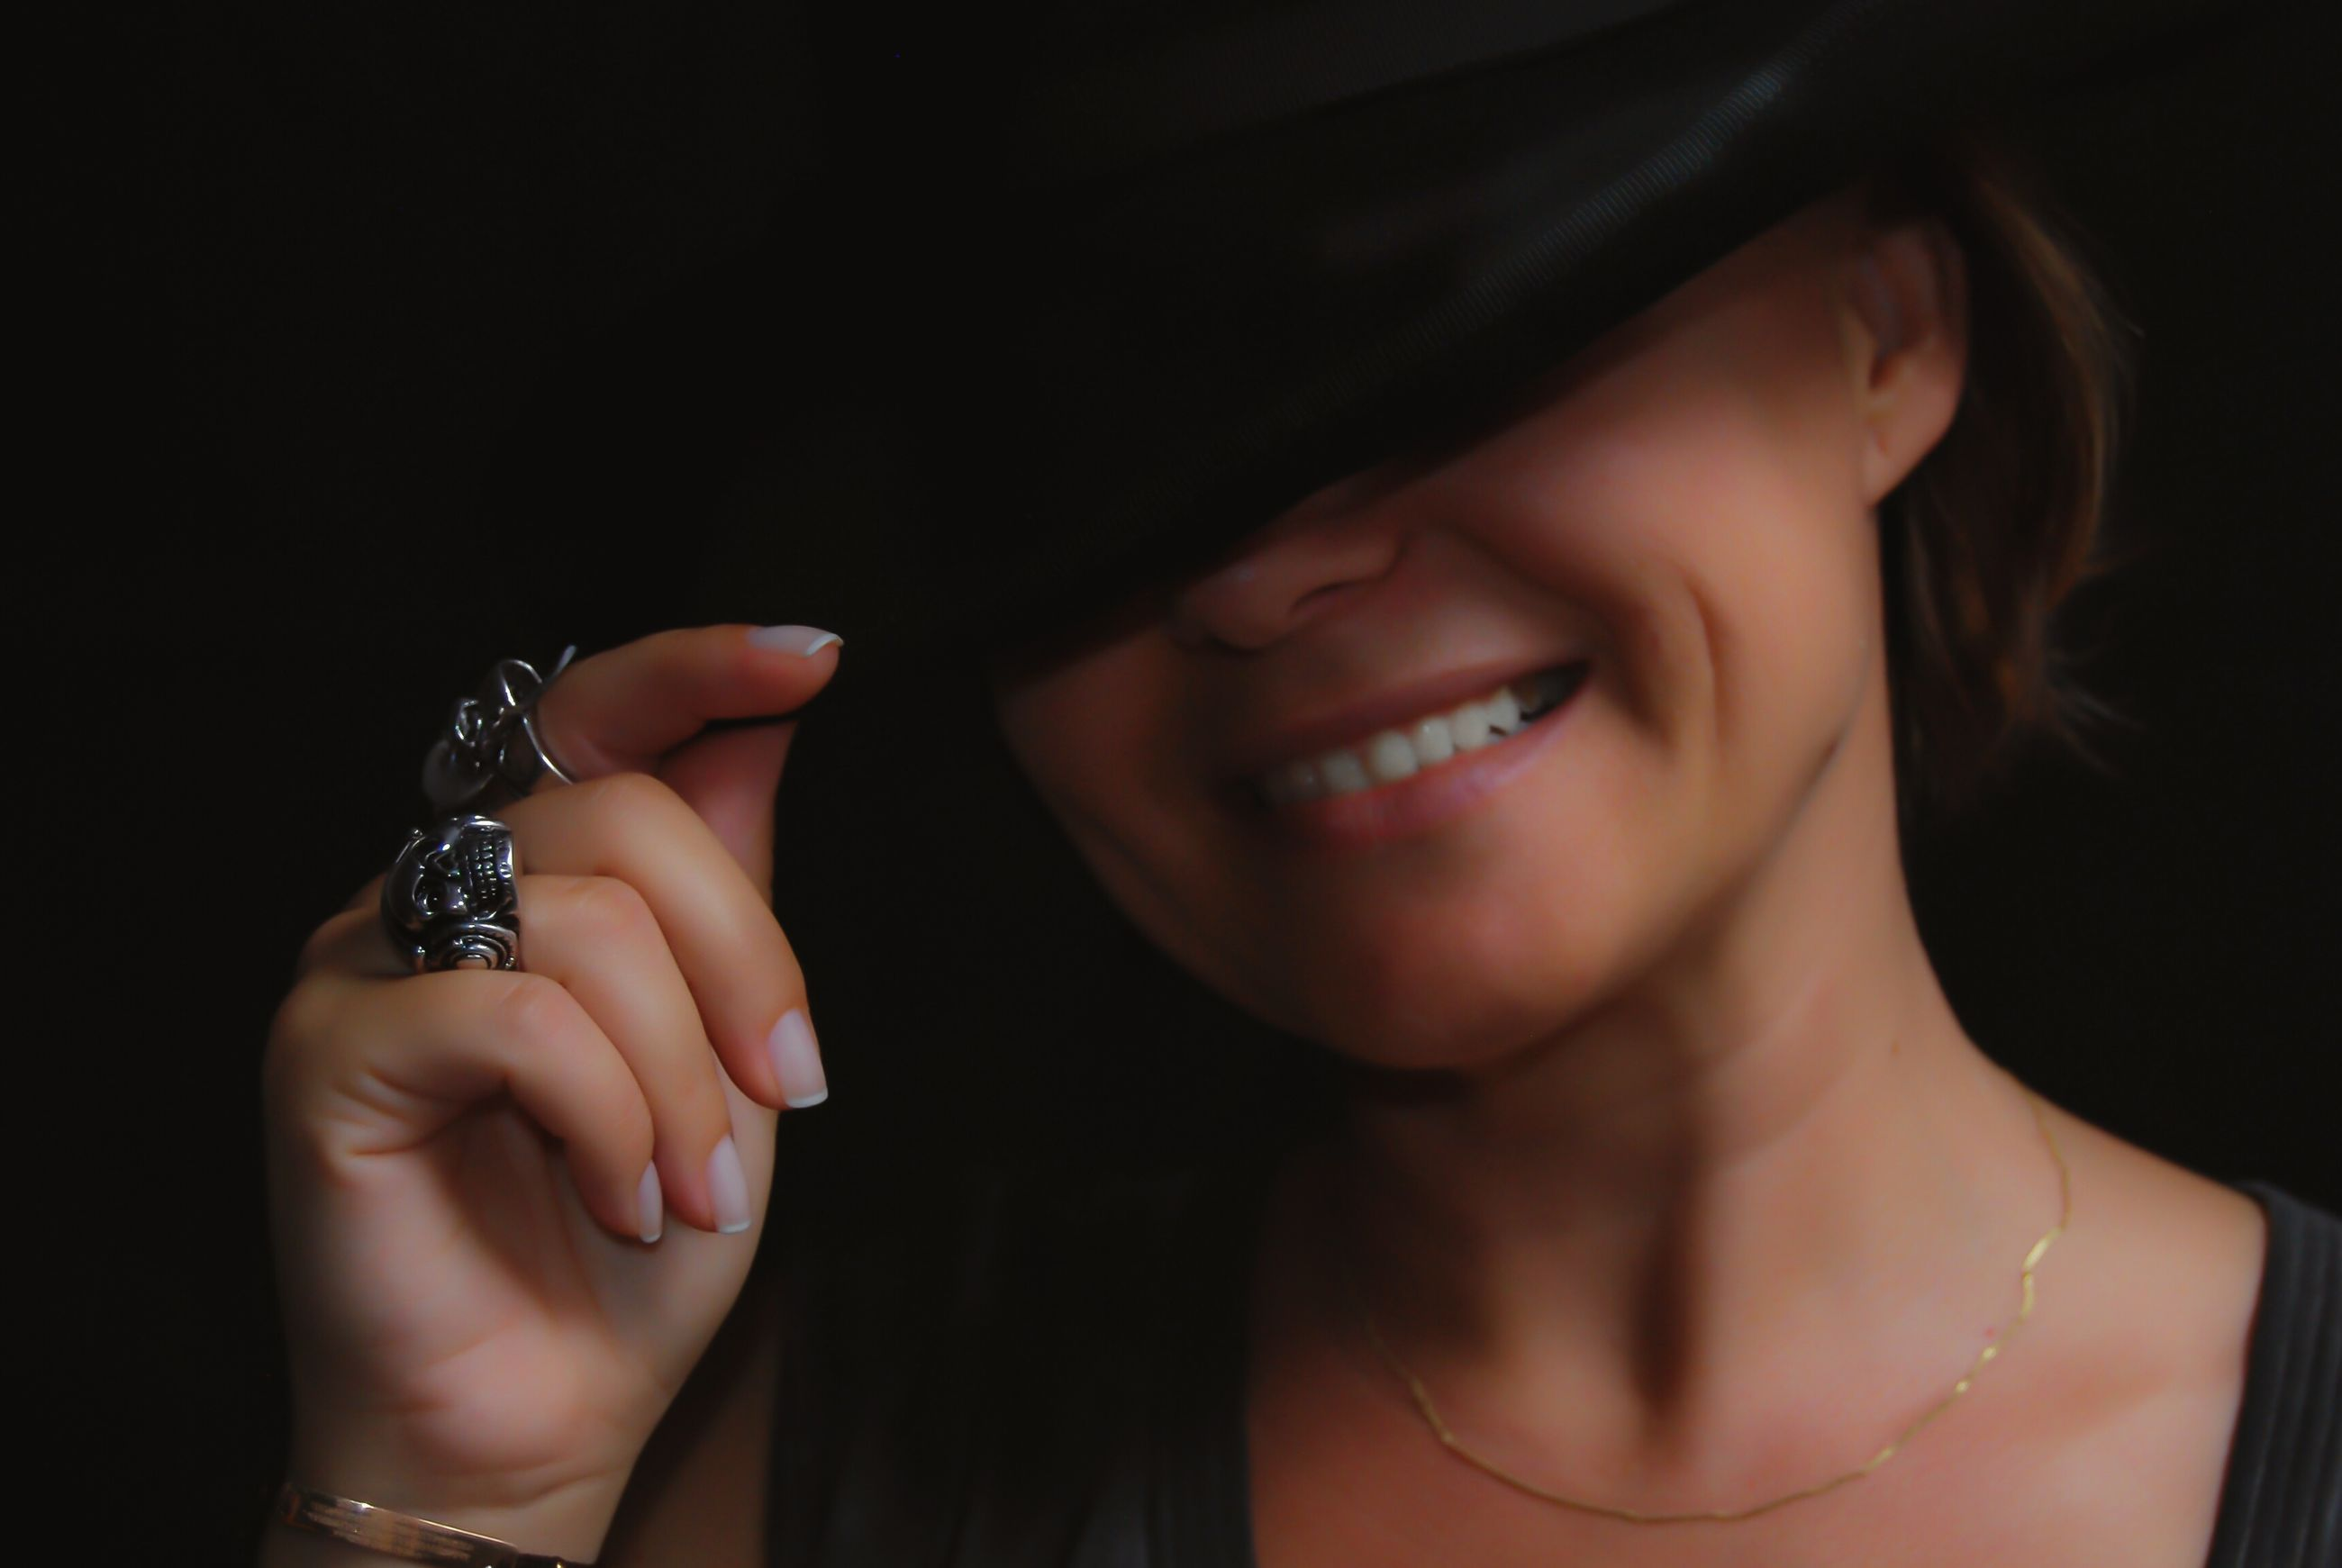 CLOSE-UP PORTRAIT OF A SMILING YOUNG WOMAN HOLDING BLACK BACKGROUND